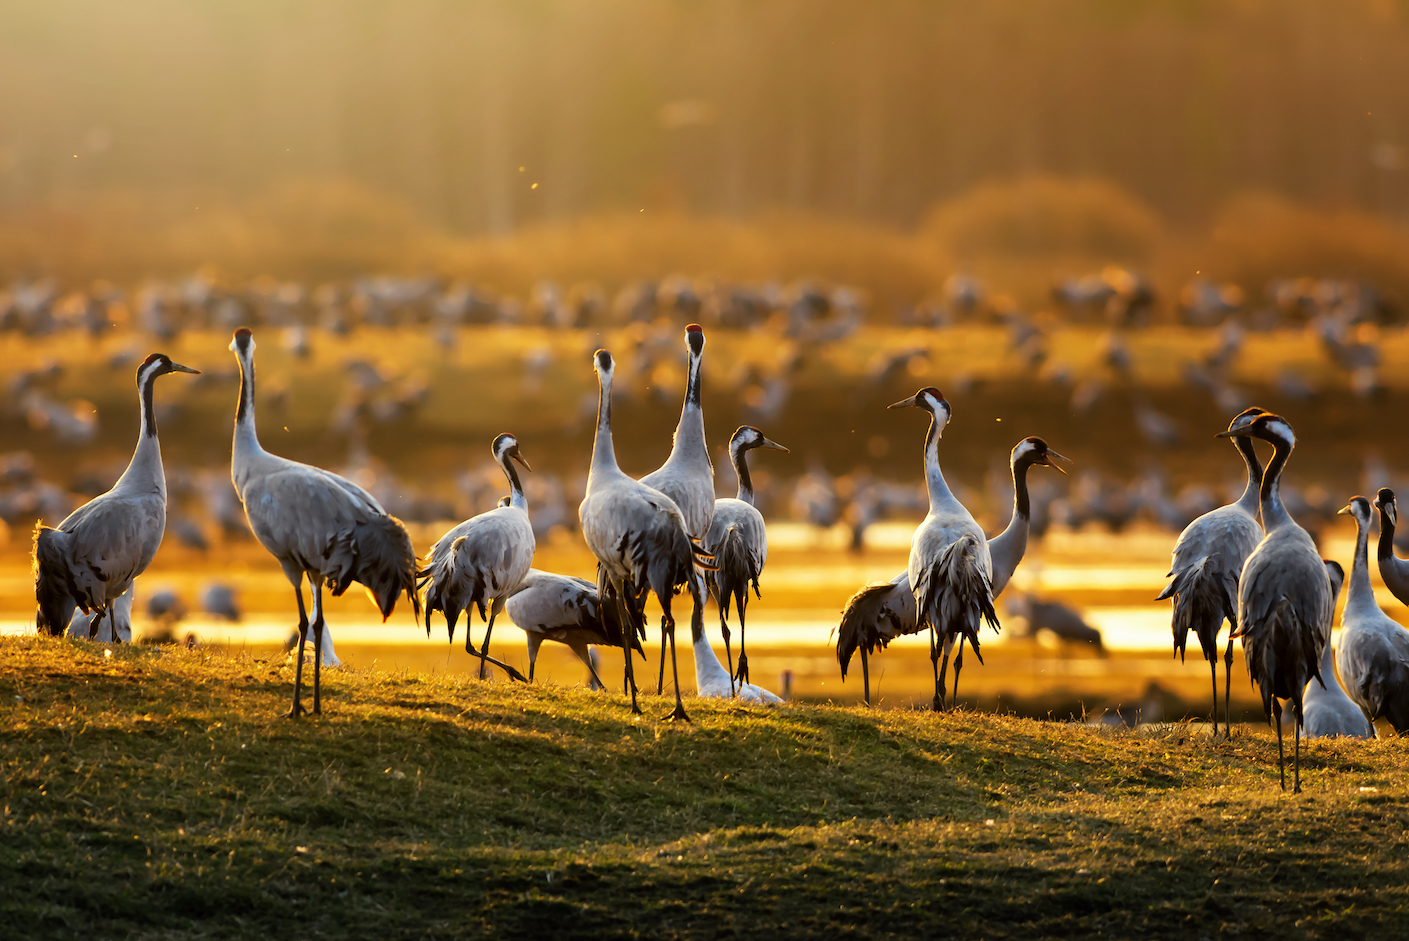 A new study has compared the results of wildlife surveys to true population size by looking at the more than thirty years of surveys of crane populations.